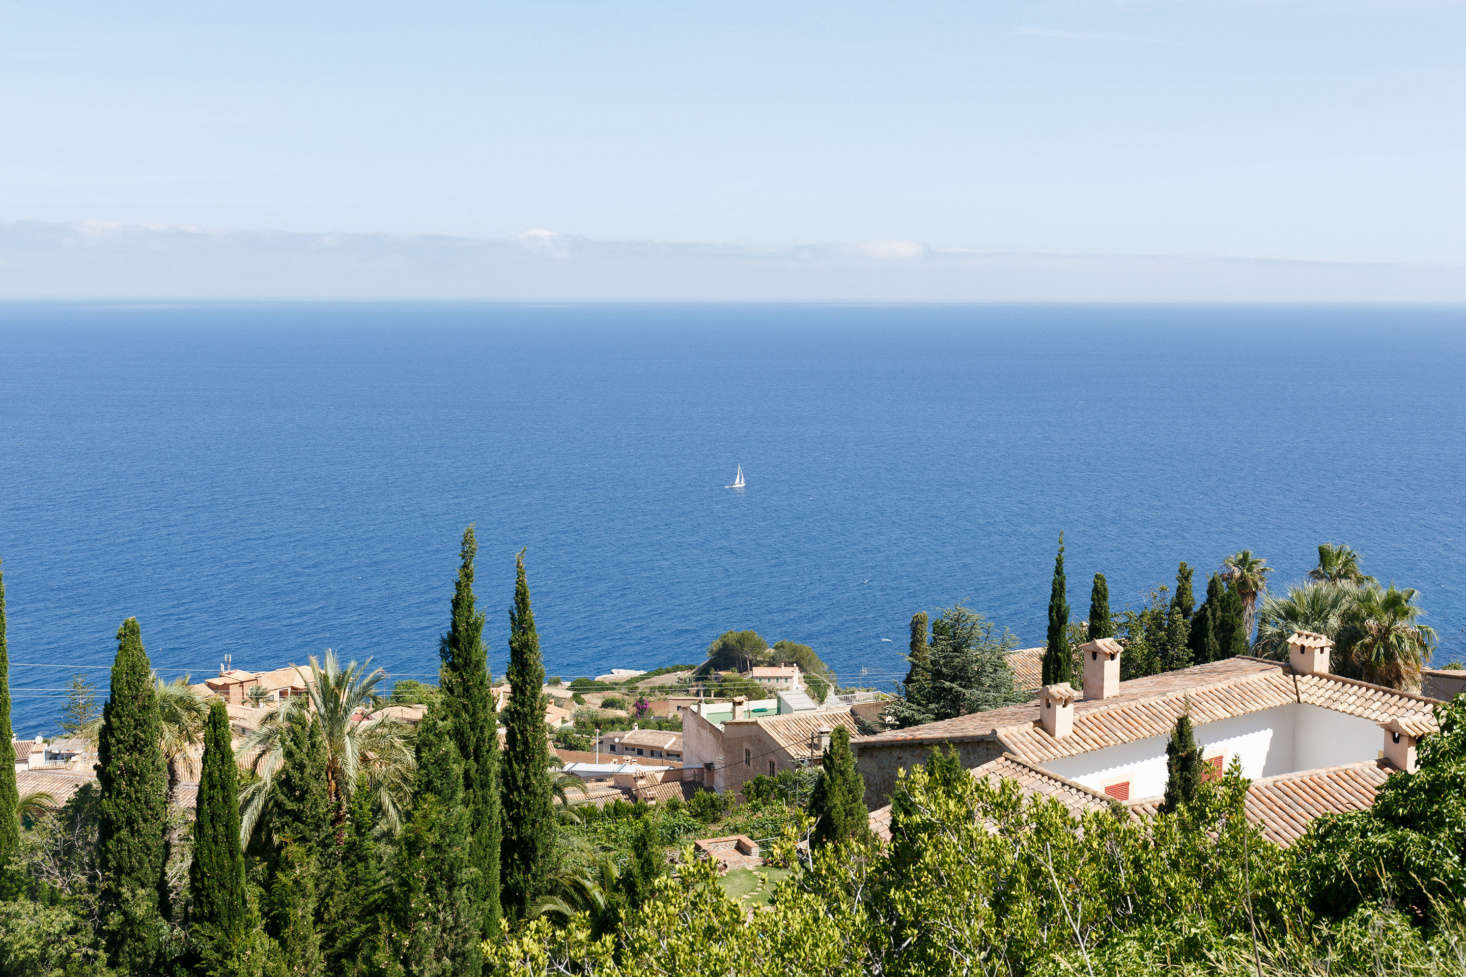 The bedrooms have unobstructed views of the Balearic Sea.